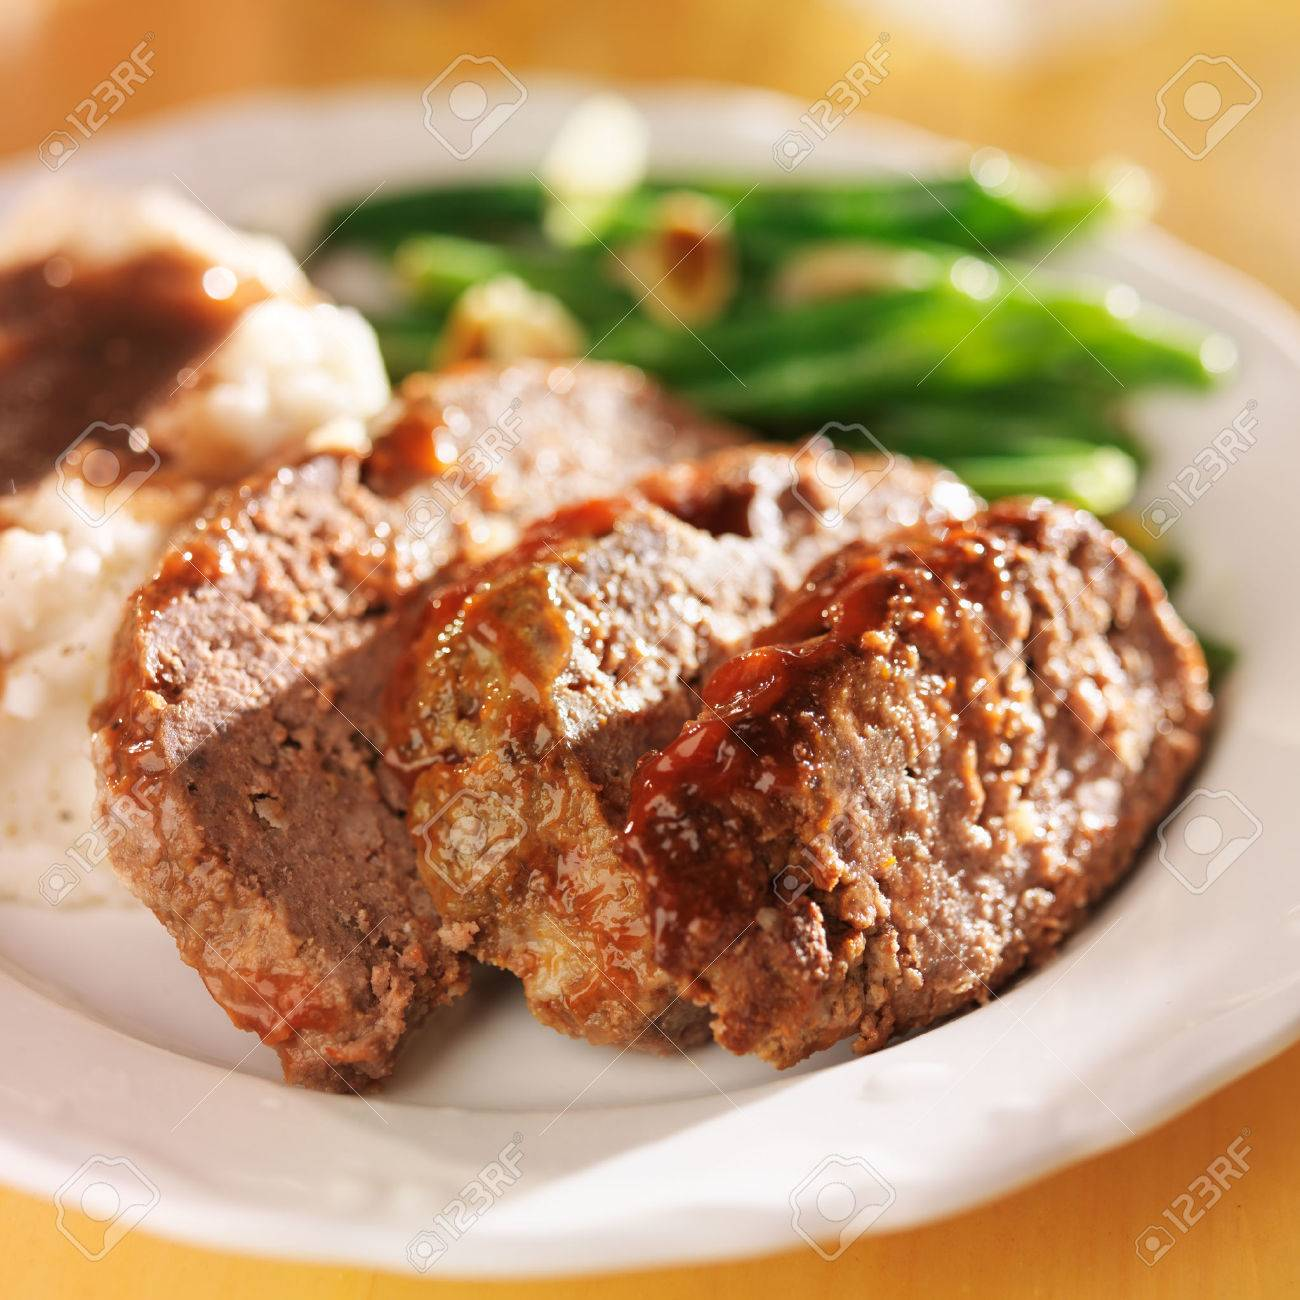 hearty meatloaf dinner with sides Stock Photo - 25857008